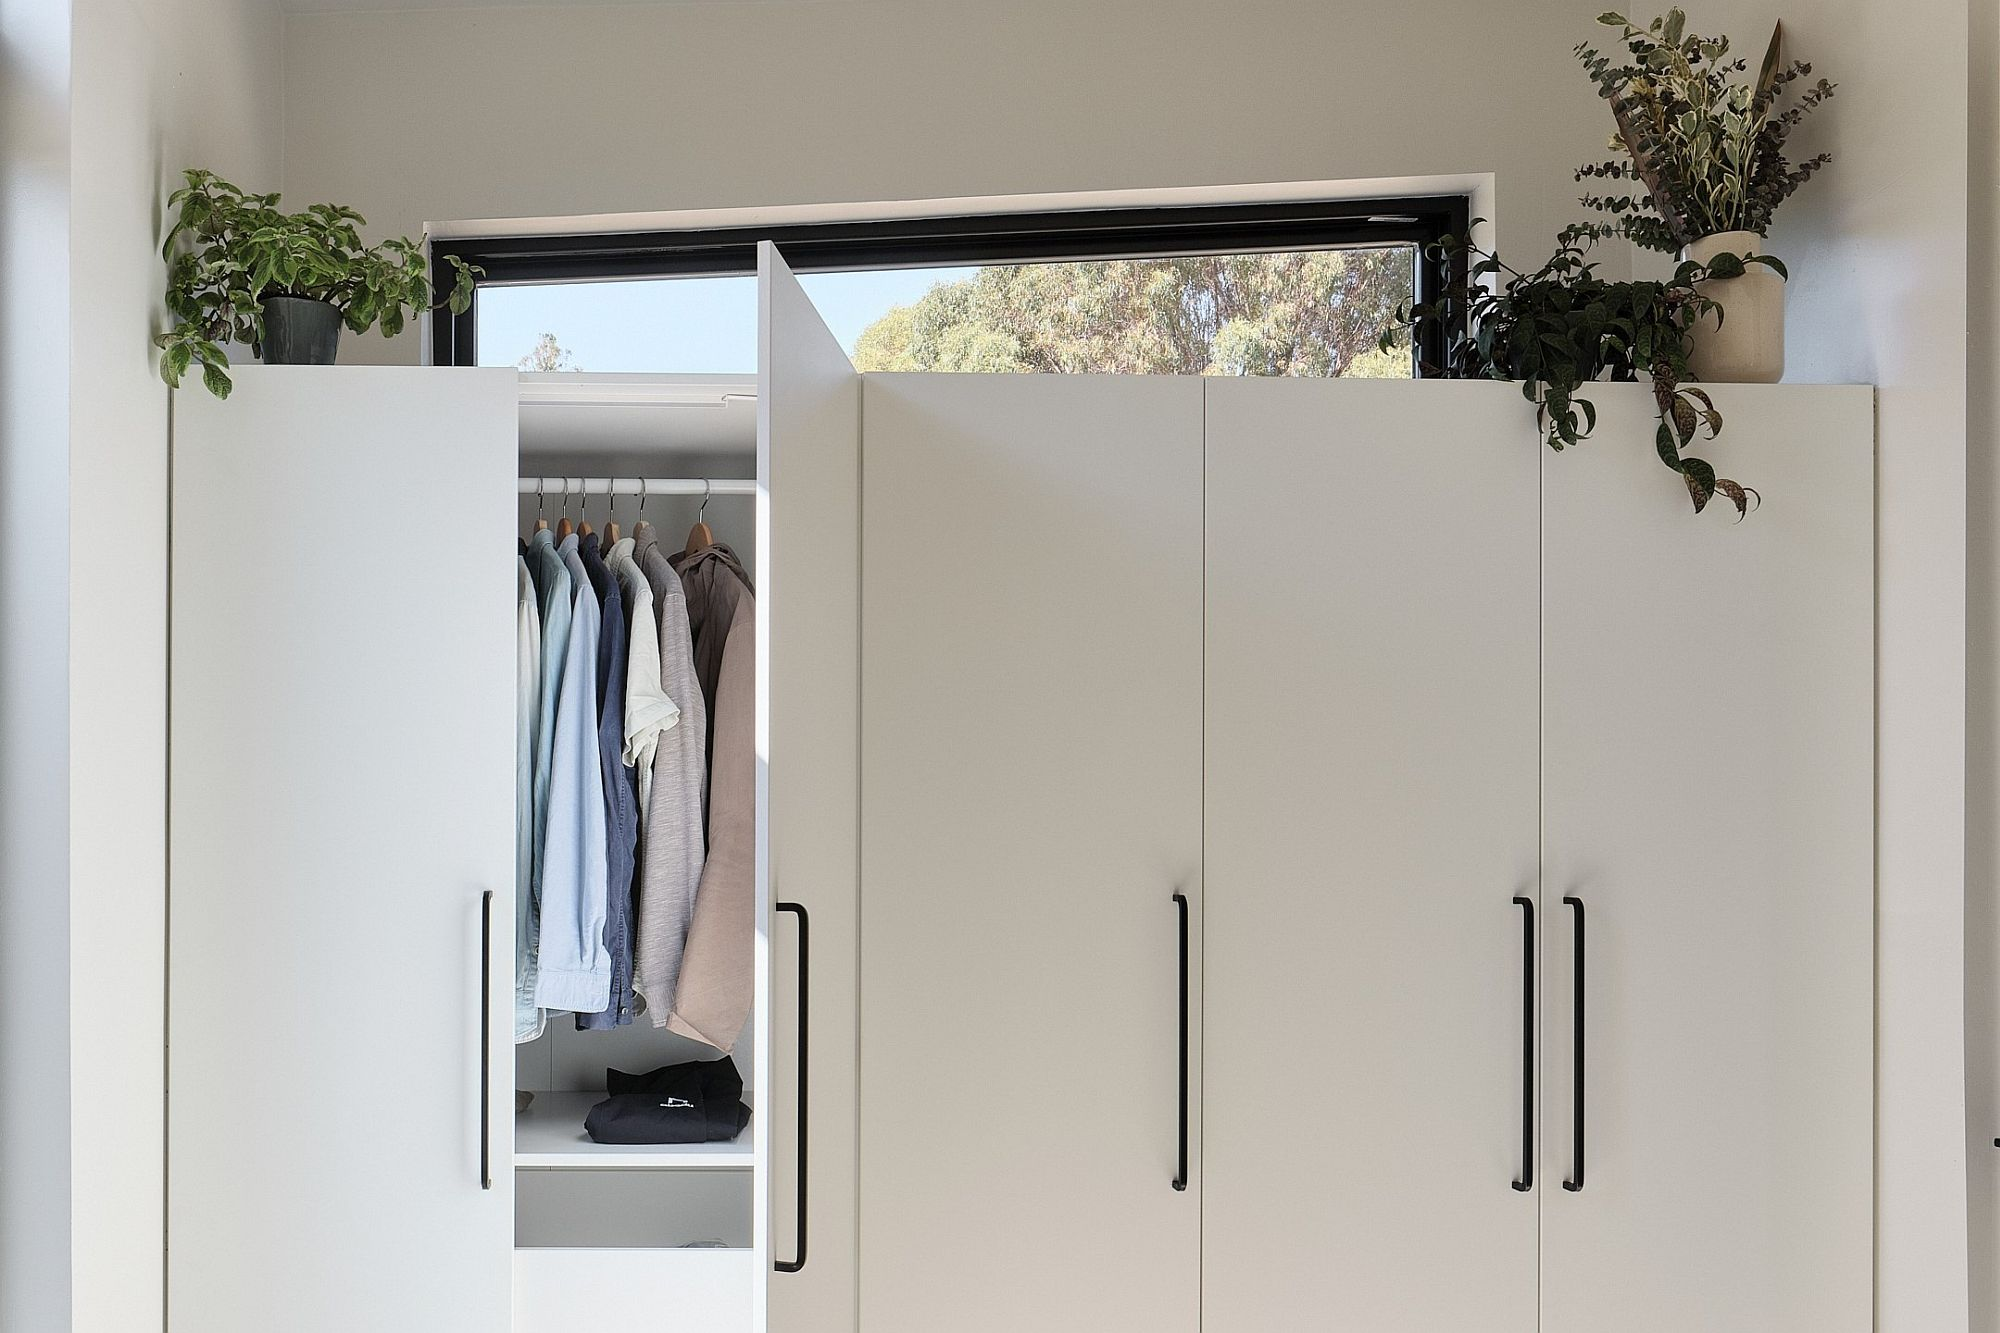 Smart and space-savvy bedroom wardrobe makes most of available space